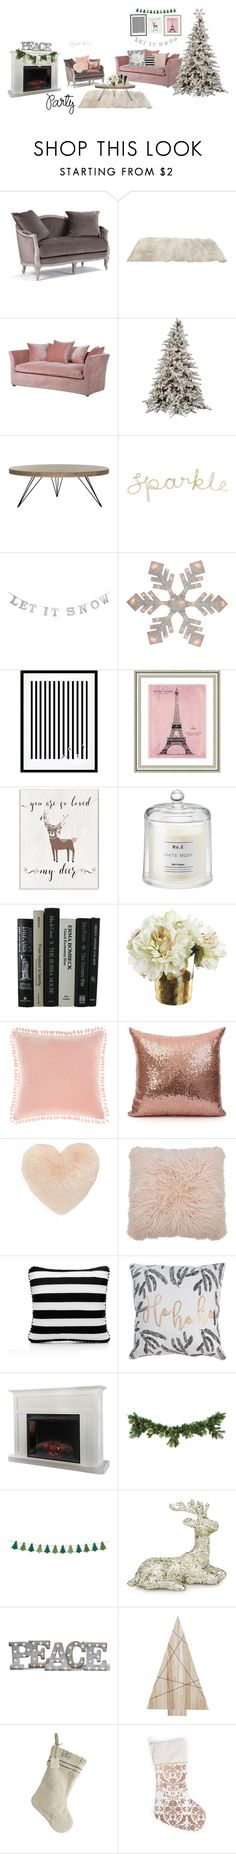 """""""holiday party"""" by gracestyles ❤ liked on Polyvore featuring interior, interiors, interior design, home, home decor, interior decorating, Safavieh, Eleanor Stuart, Vintage Print Gallery and Stupell"""